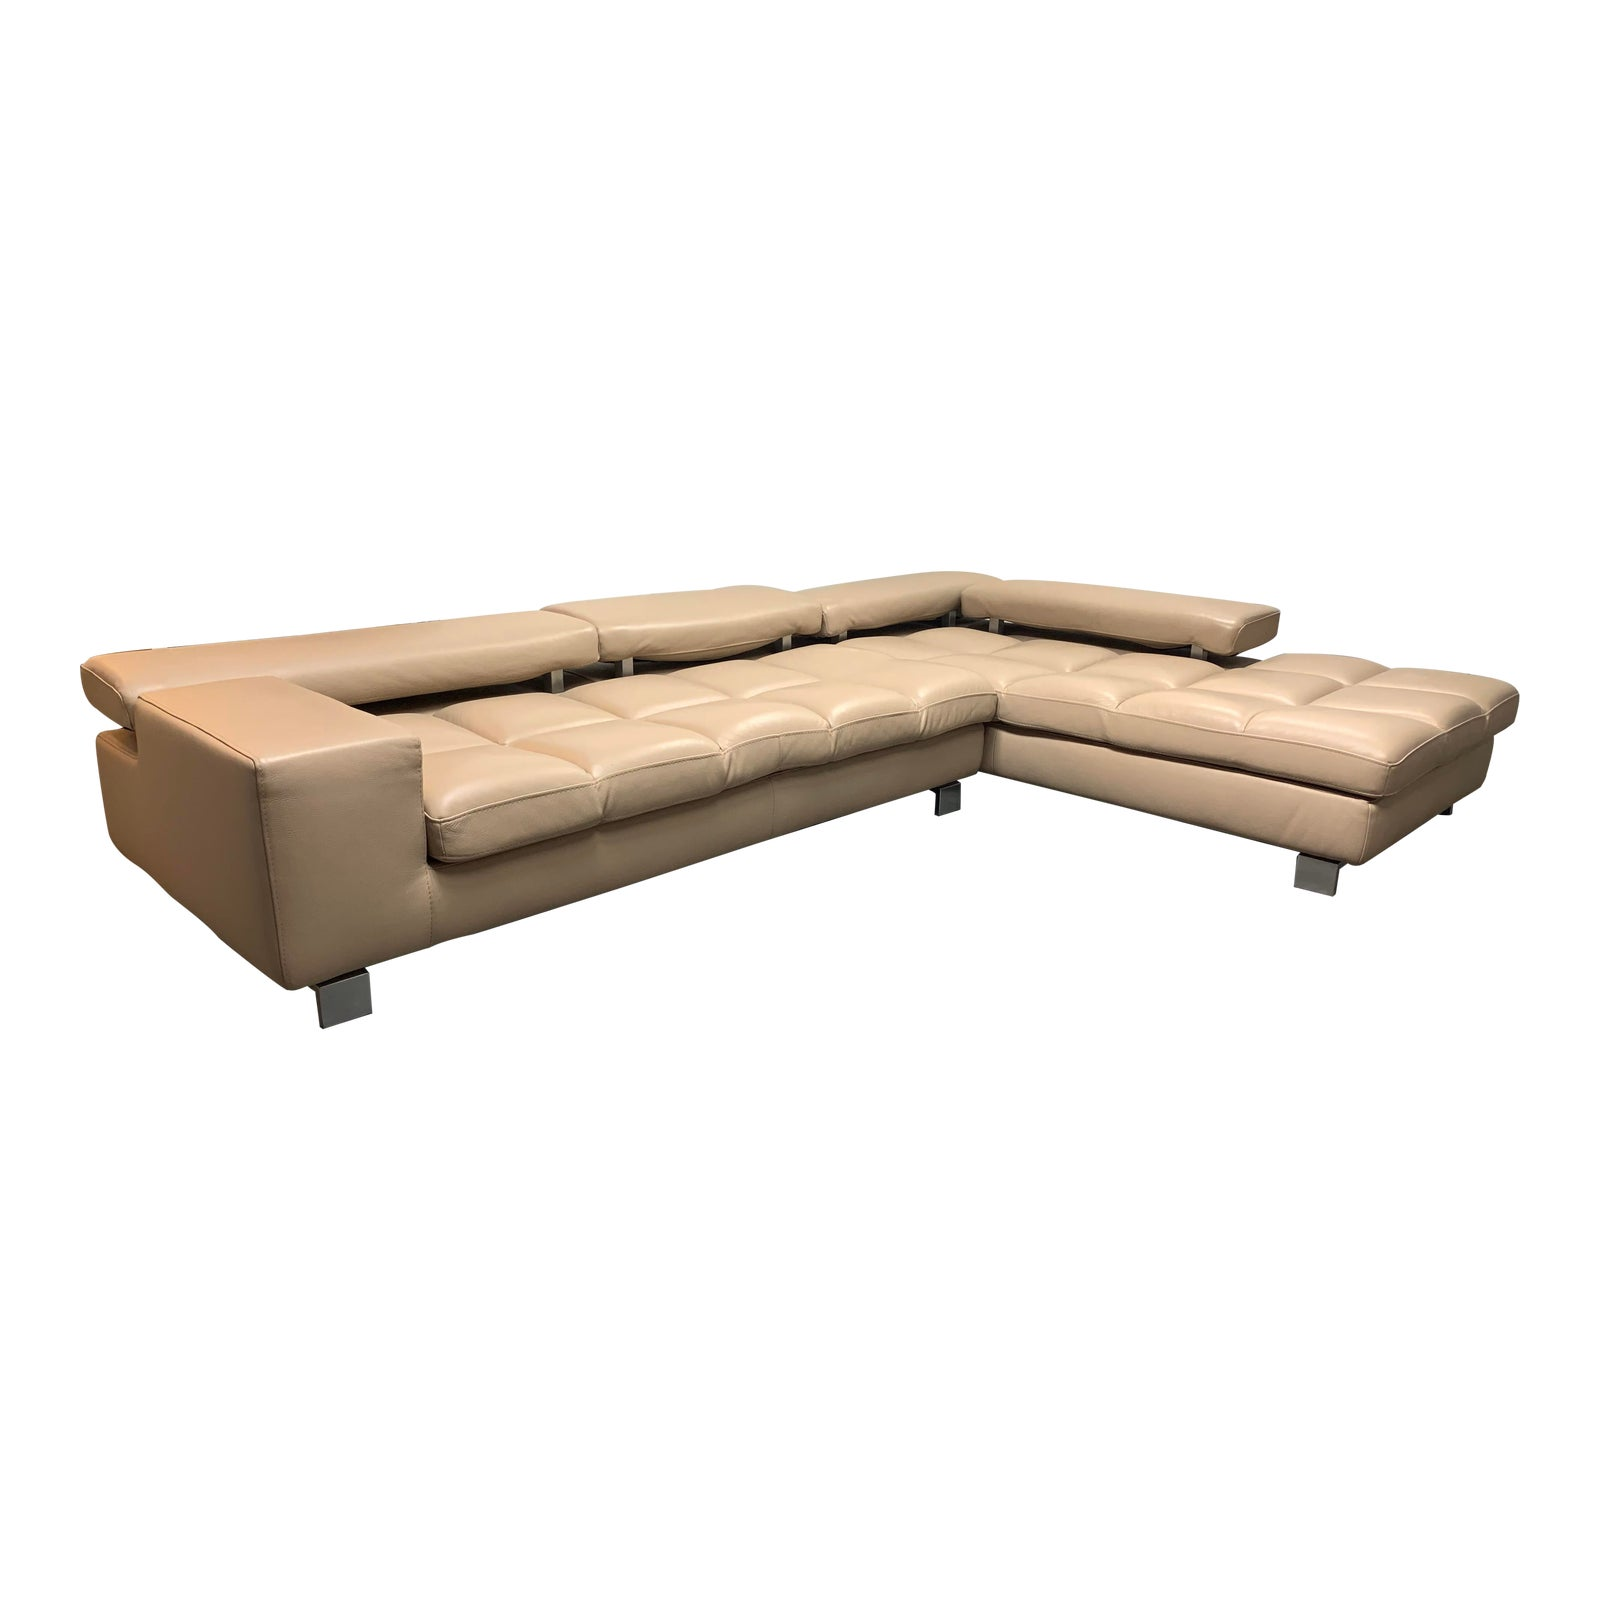 Sensational Roche Bobois Two Piece Leather Milano Sectional Original Ocoug Best Dining Table And Chair Ideas Images Ocougorg